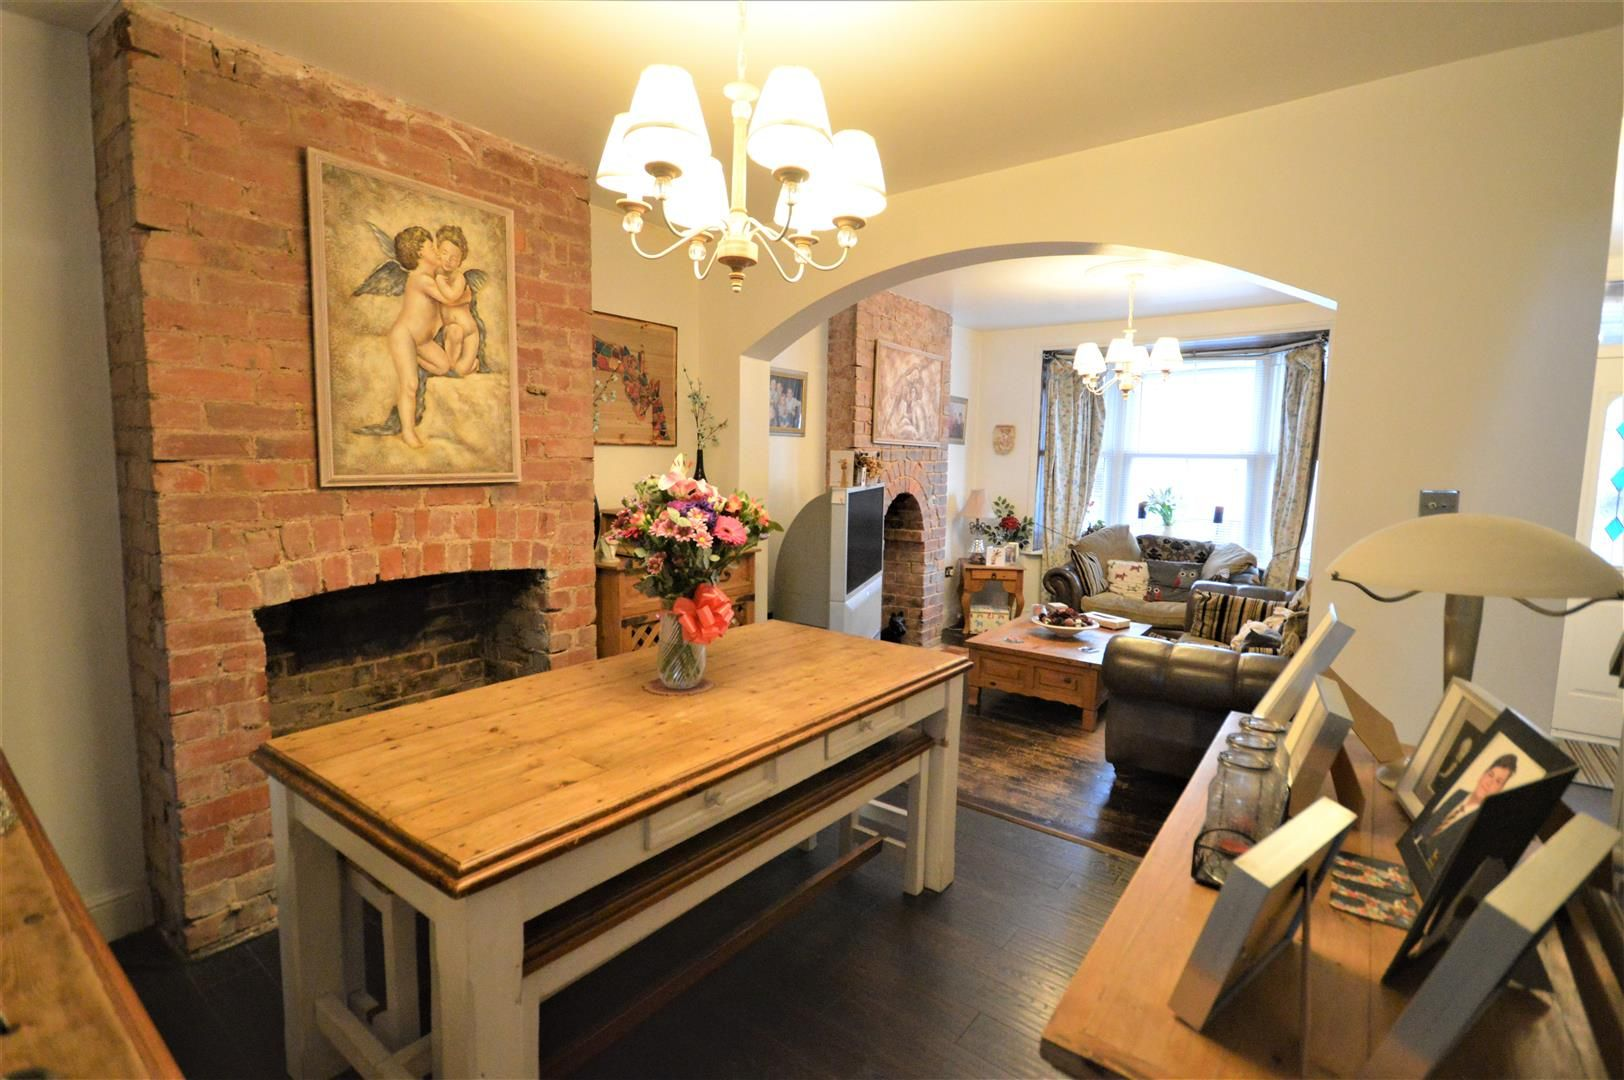 3 bed end of terrace for sale in Leominster  - Property Image 2